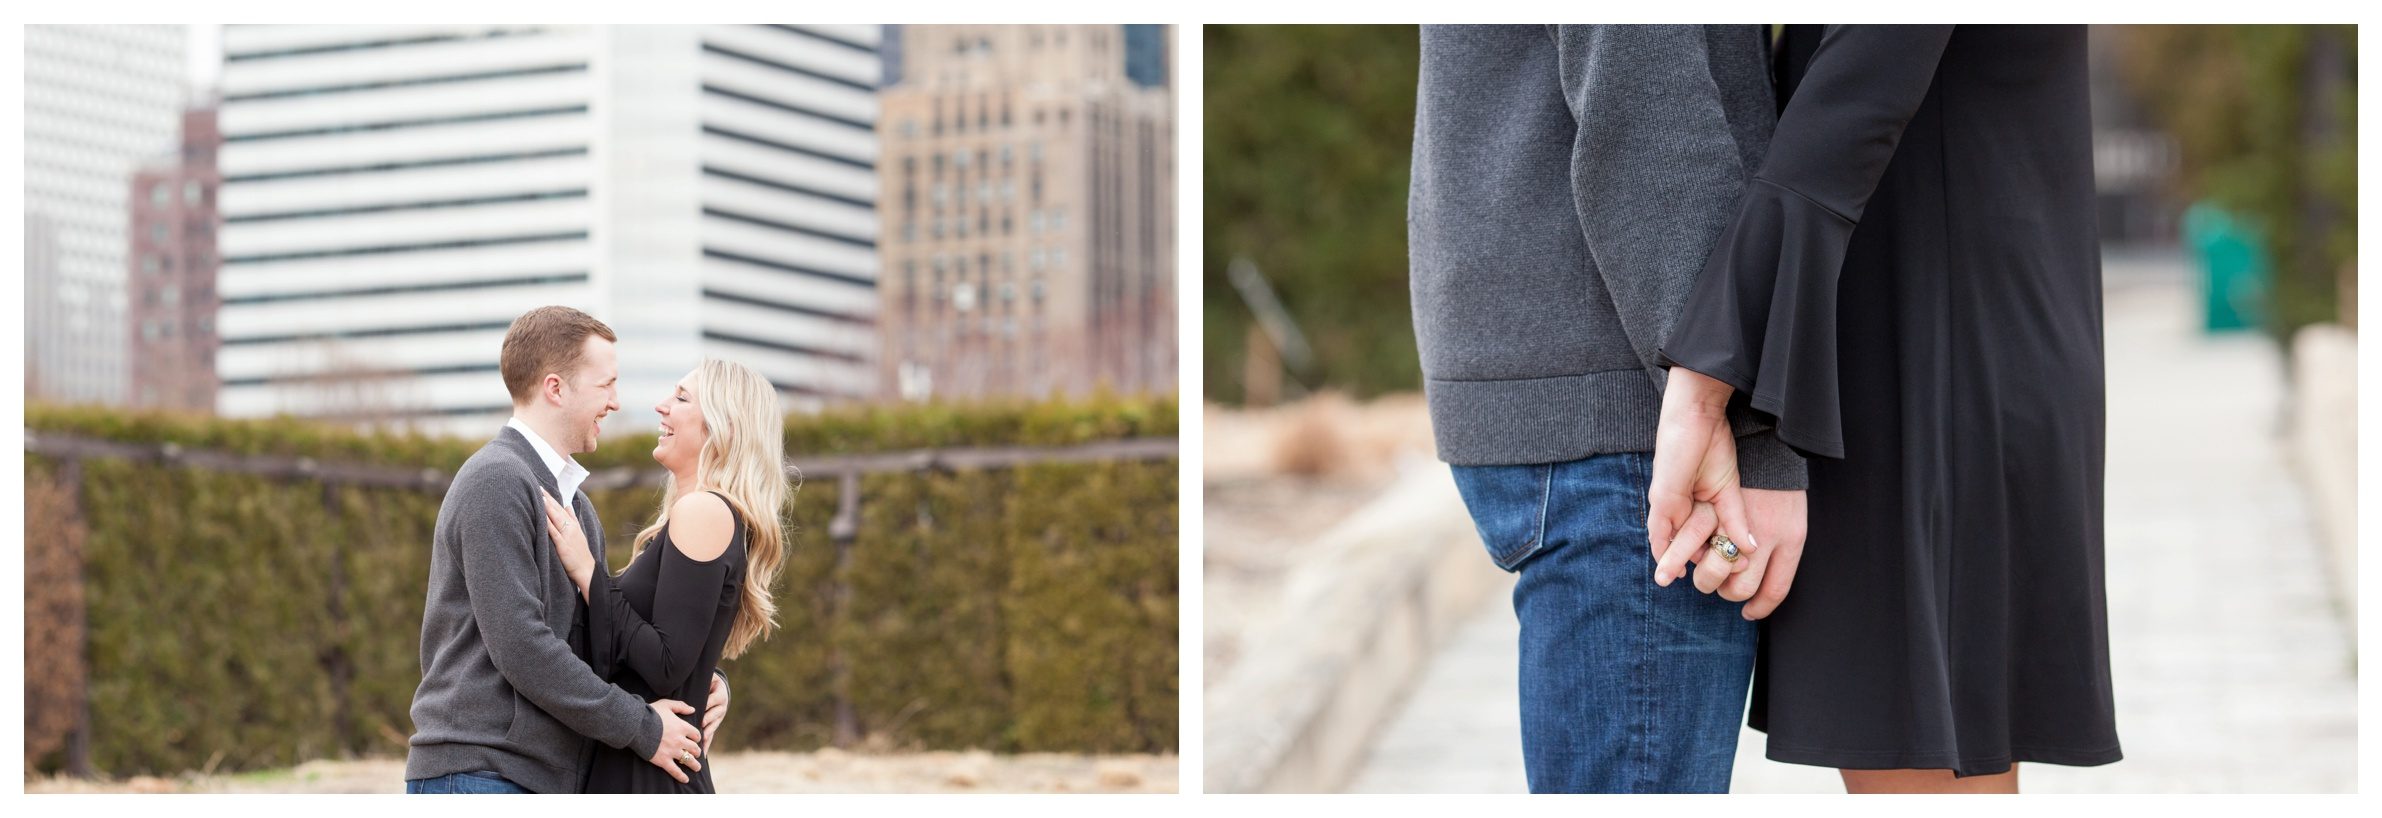 millenium-park-engagement-session